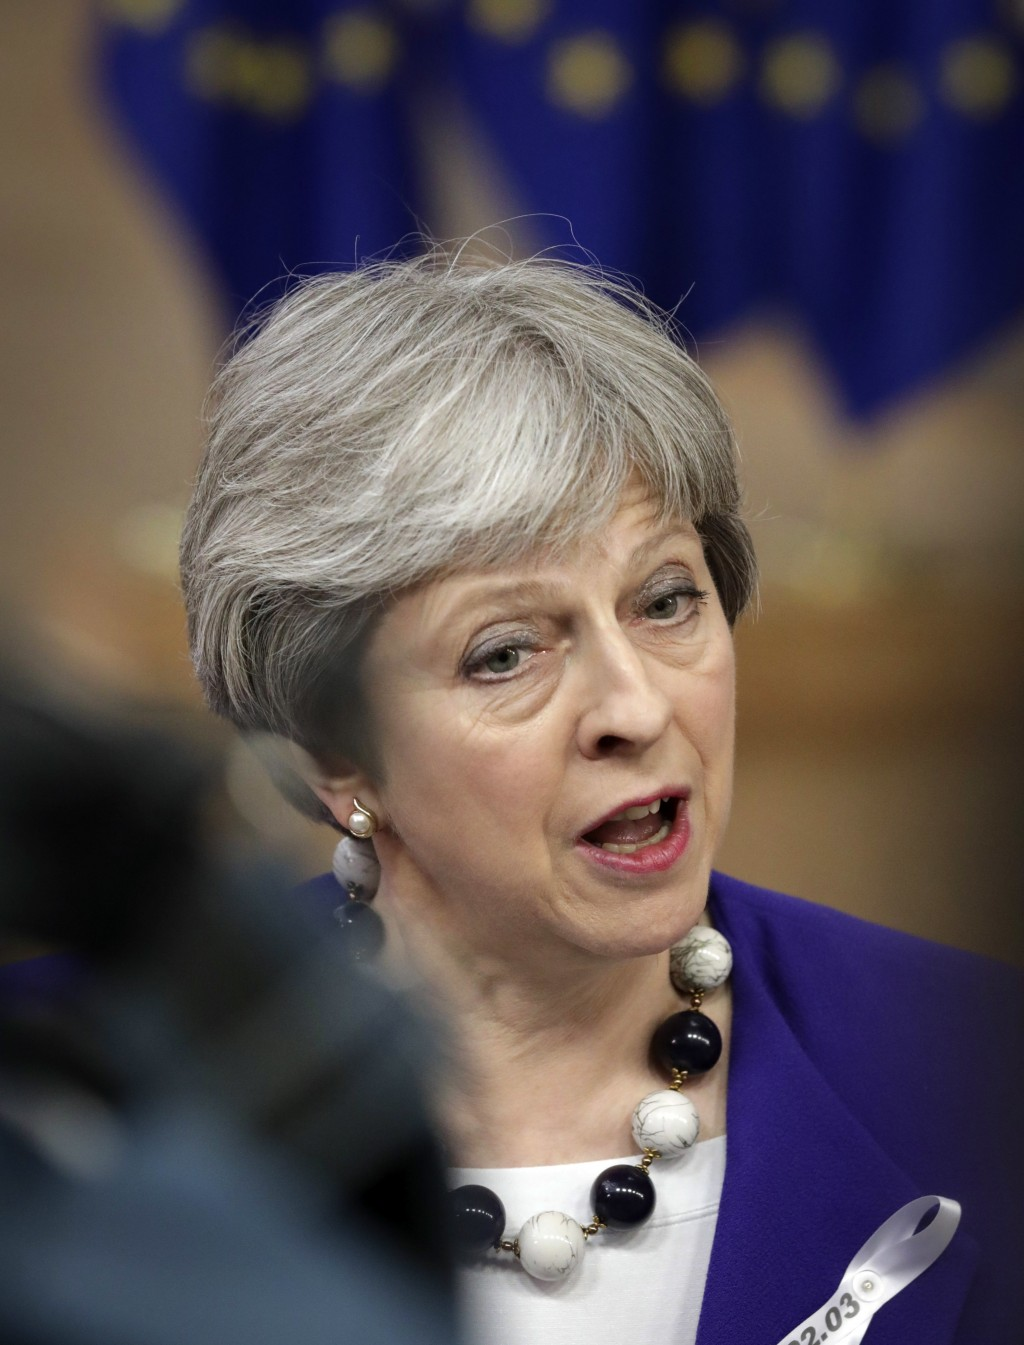 British Prime Minister Theresa May speaks with the media as she arrives for an EU summit at the Europa building in Brussels on Thursday, March 22, 201...